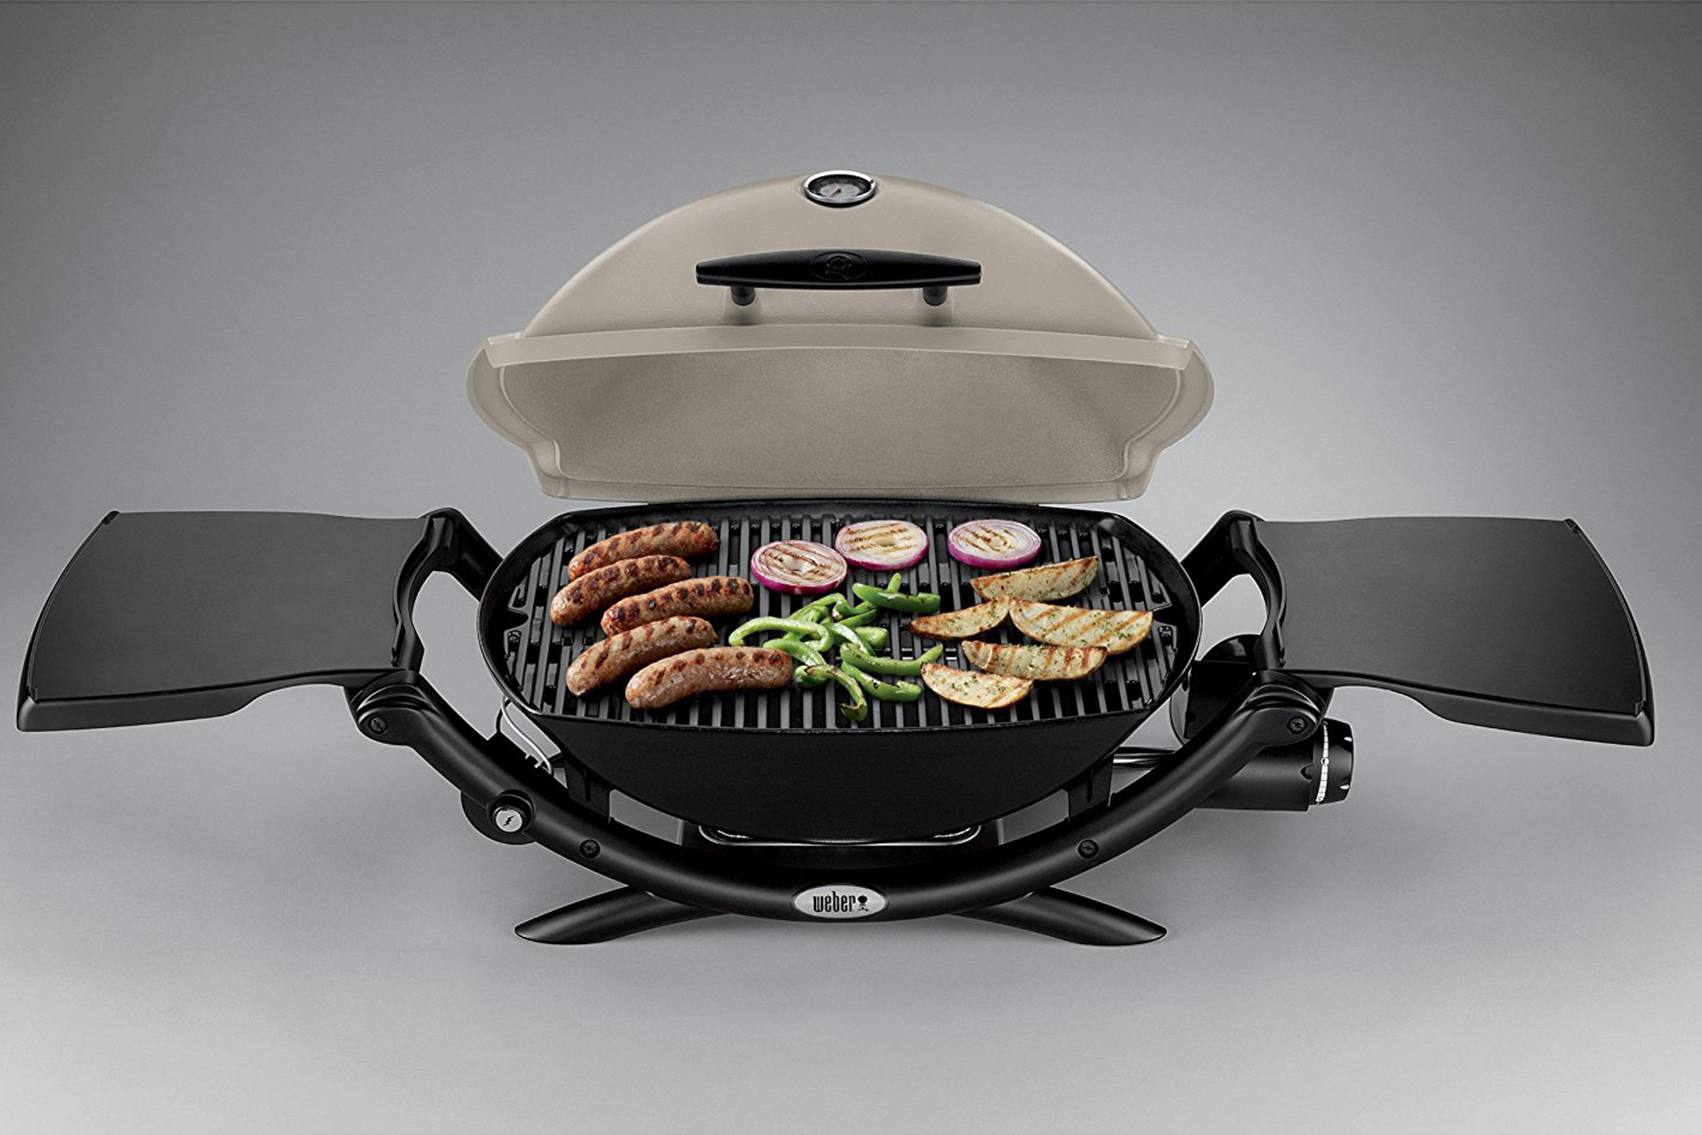 The 8 Best Grills for Tailgating to Buy in 2018